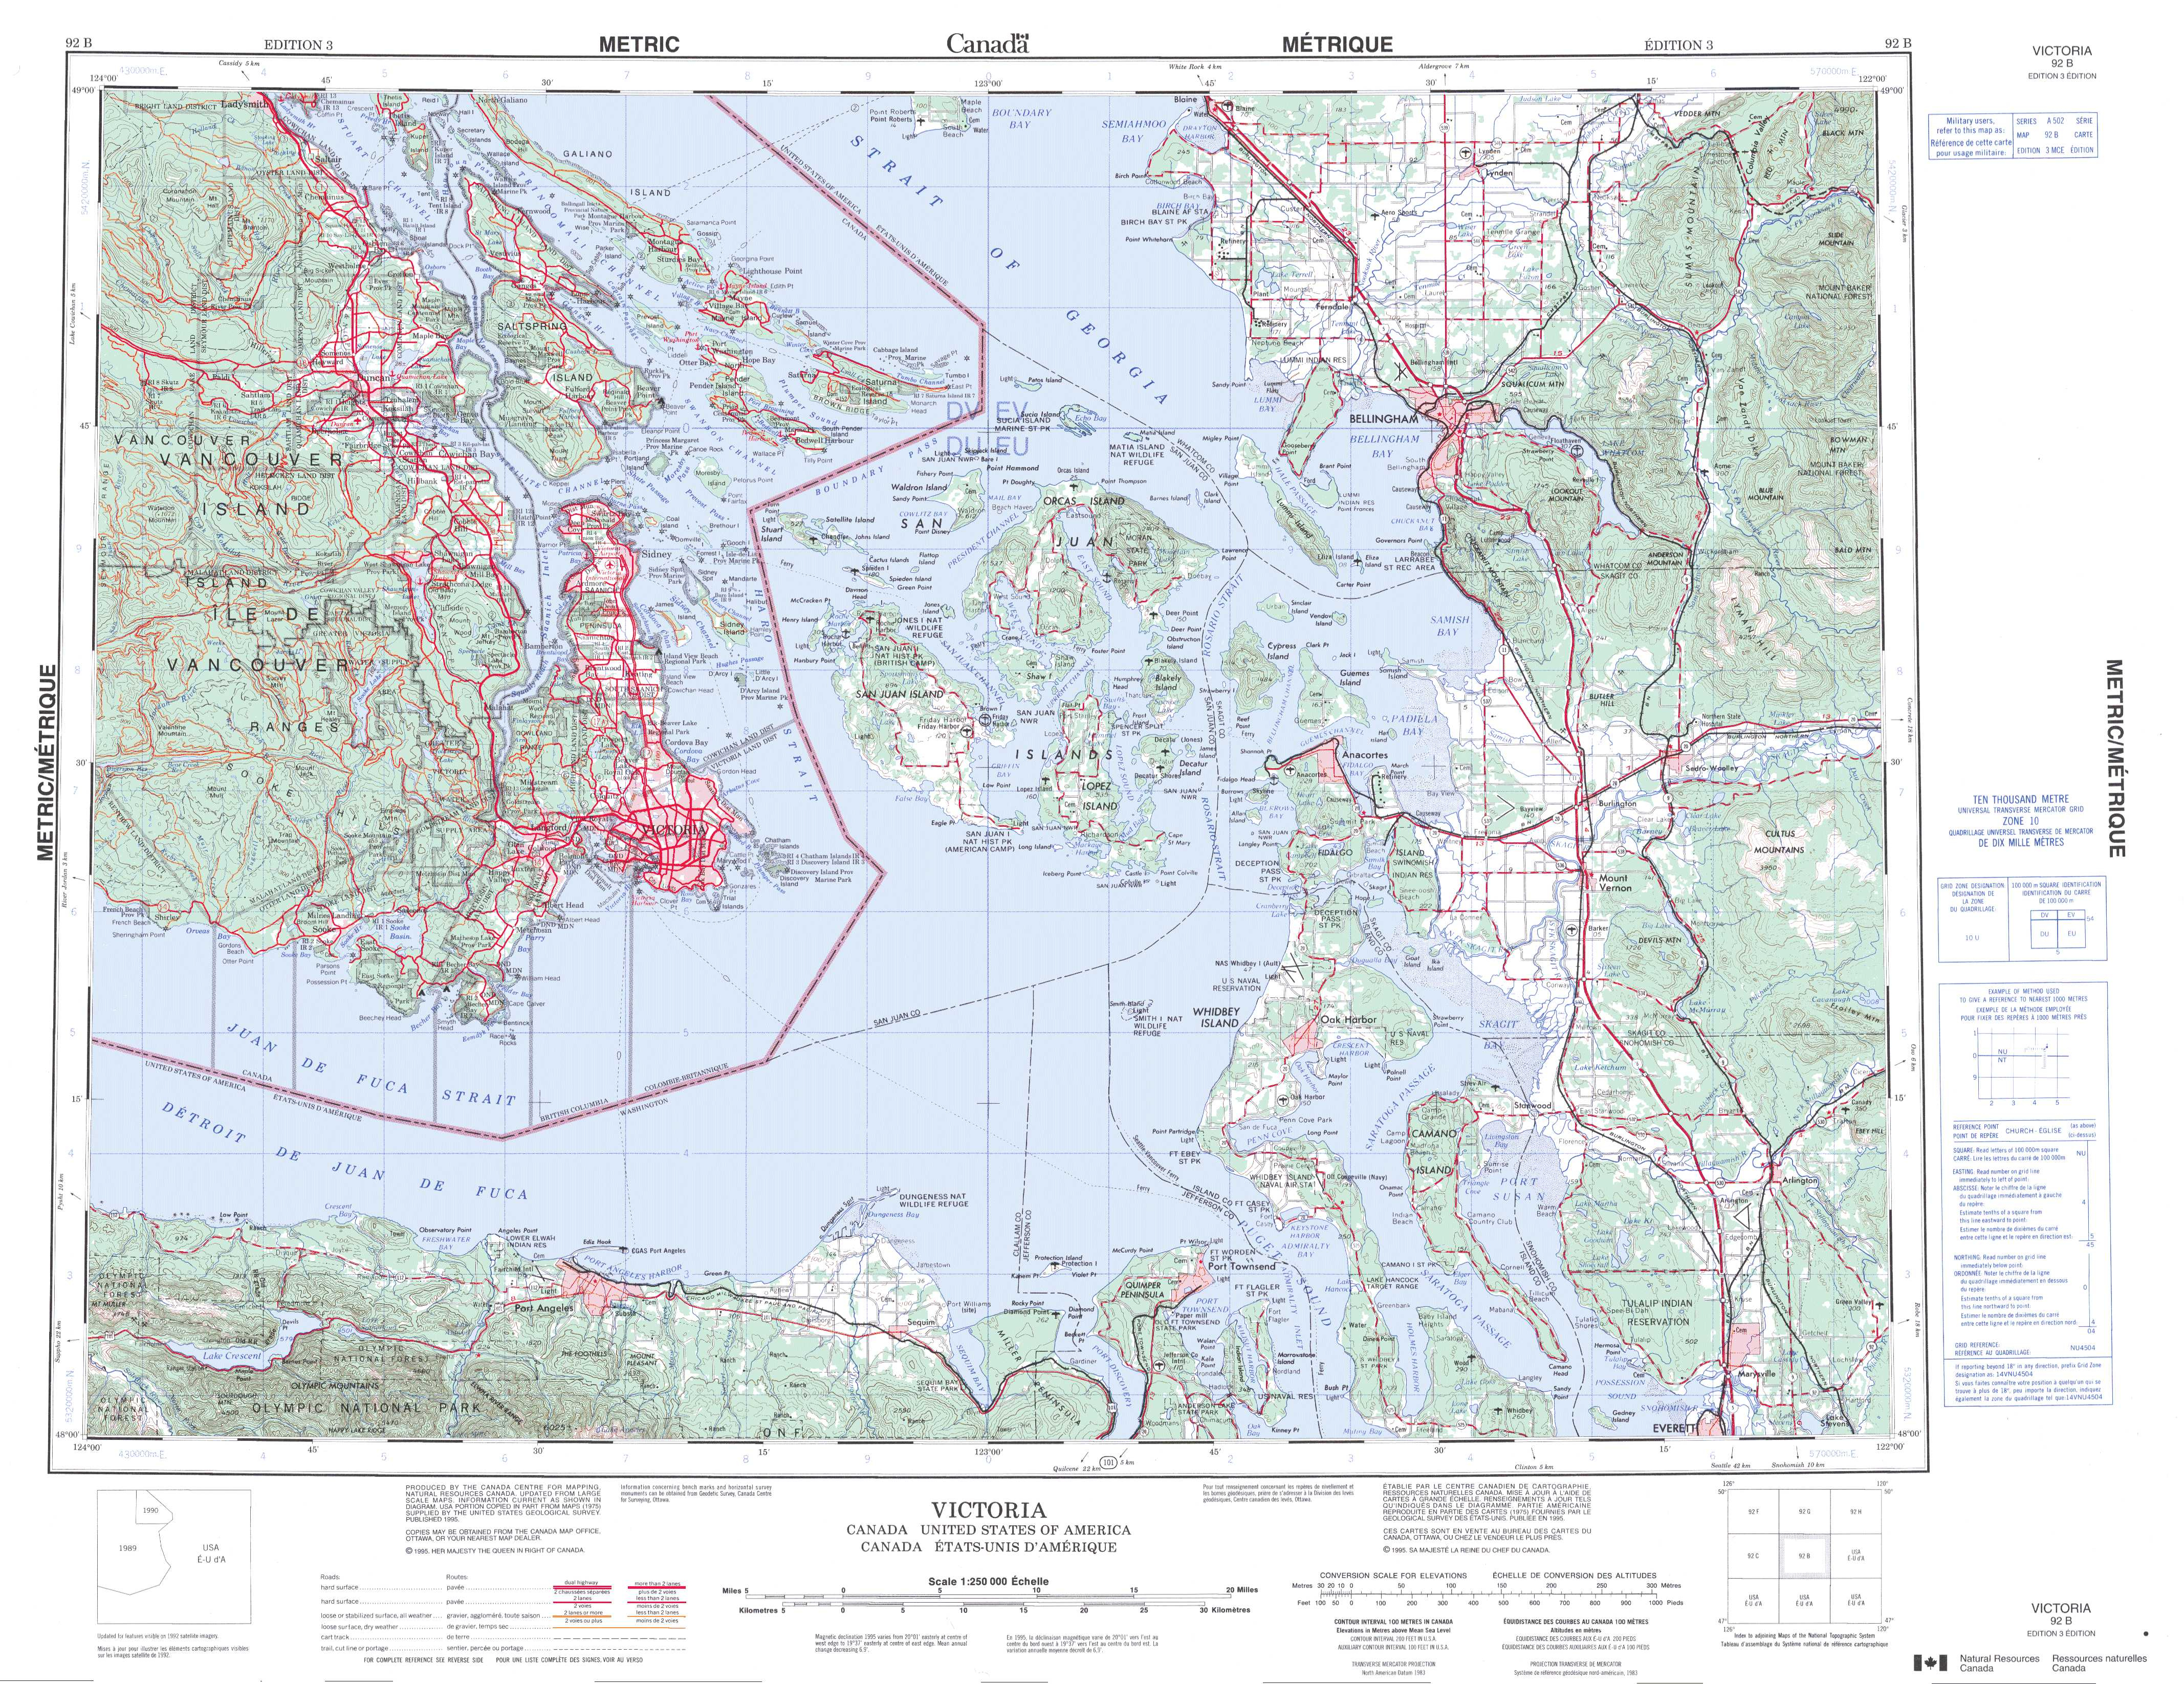 Printable Topographic Map Of Victoria 092B, Bc - Free Printable Topo Maps